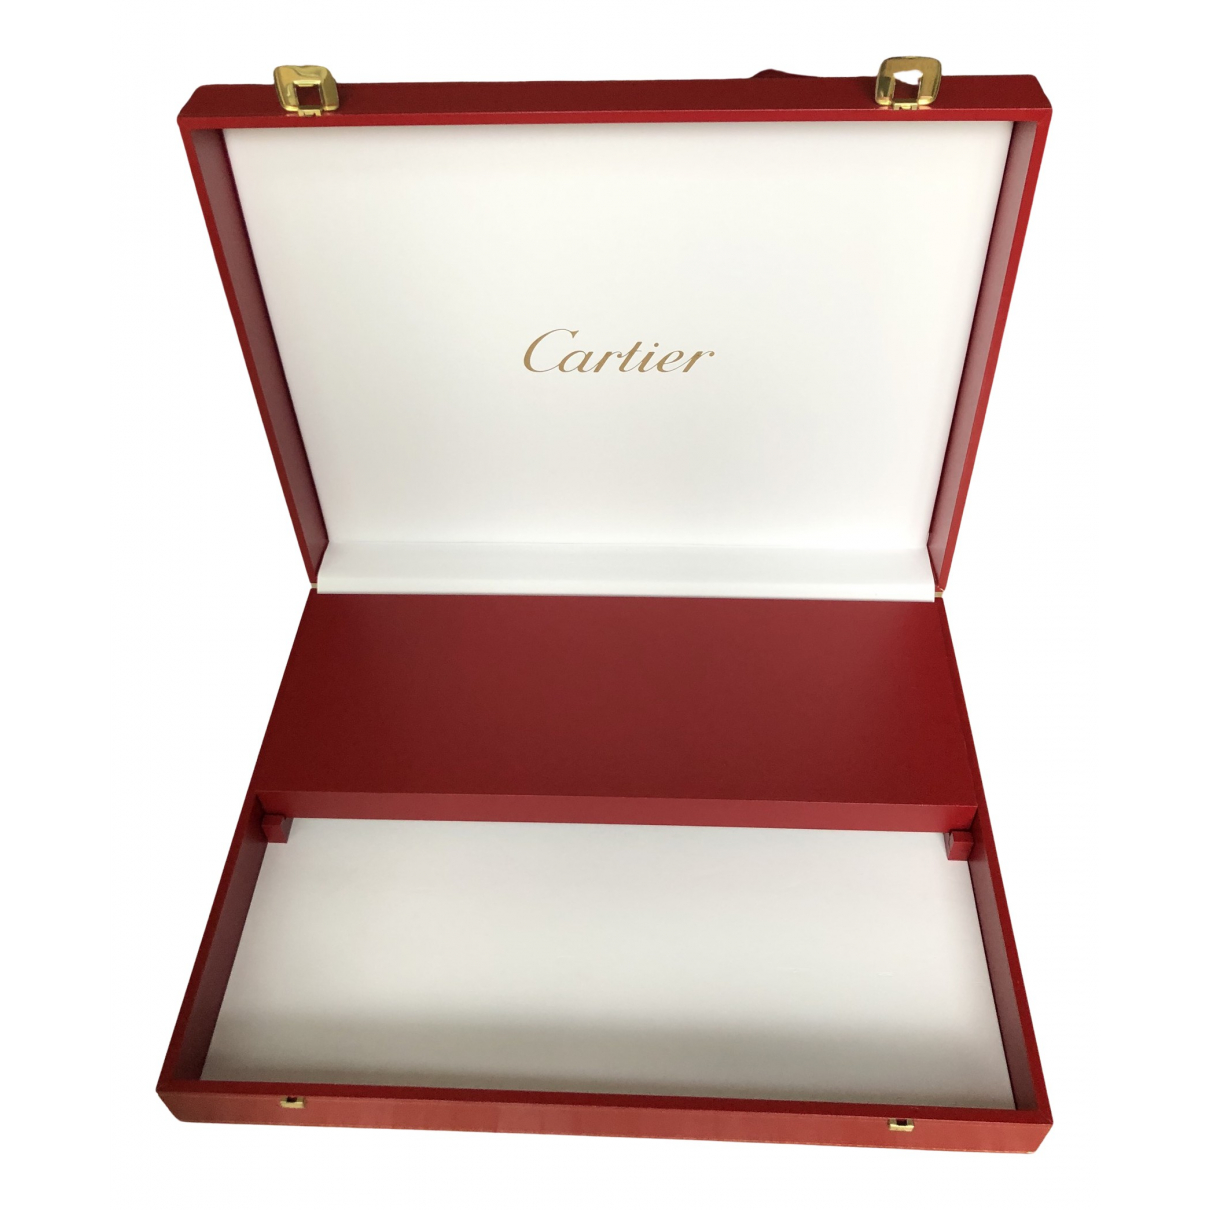 Cartier N Red Leather Home decor for Life & Living N